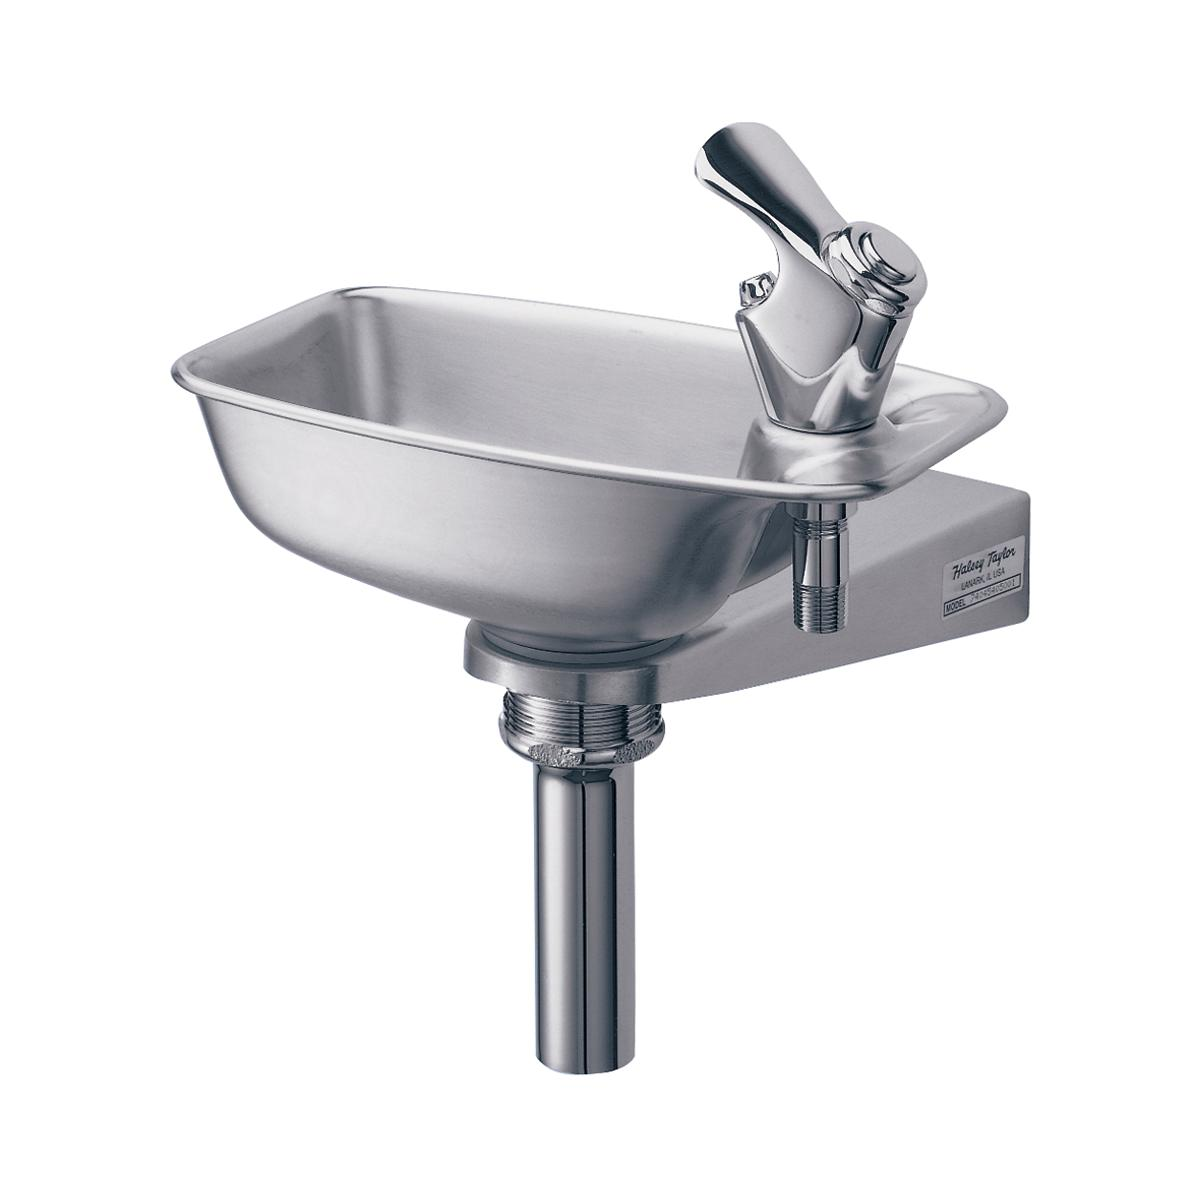 Halsey Taylor Bracket Fountain, Non-filtered Non-refrigerated Stainless 1785348